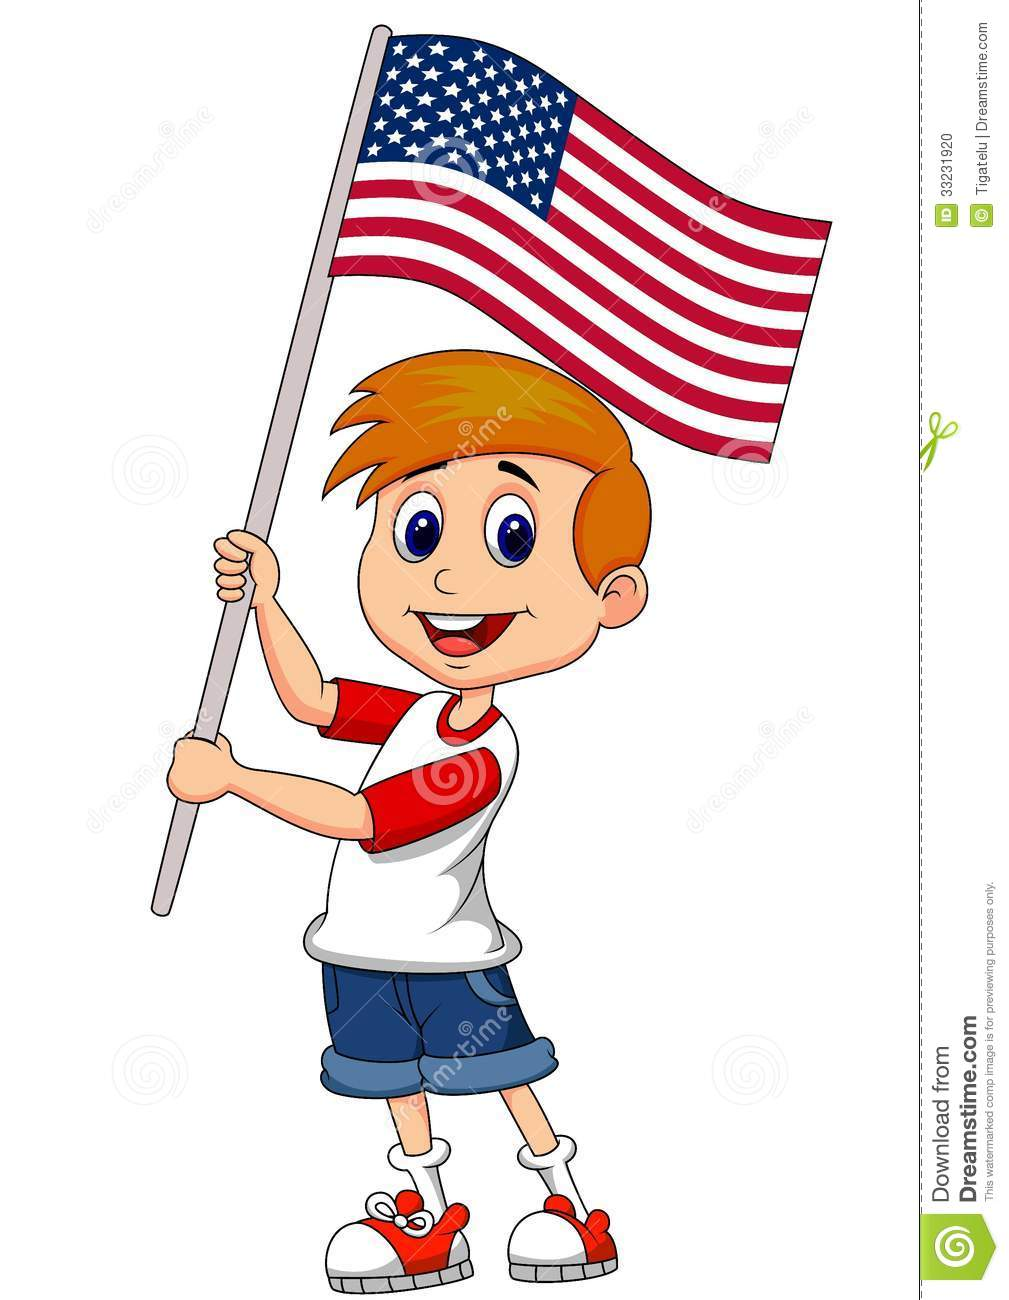 usa map app with Stock Photo Cute Boy Cartoon Waving American Flag Illustration Image33231920 on 587372325293260804 likewise 891226088766701568 likewise Royalty Free Stock Photos Usa Logo Image4698958 furthermore Portuguese Flag 198450 likewise Tacobell.